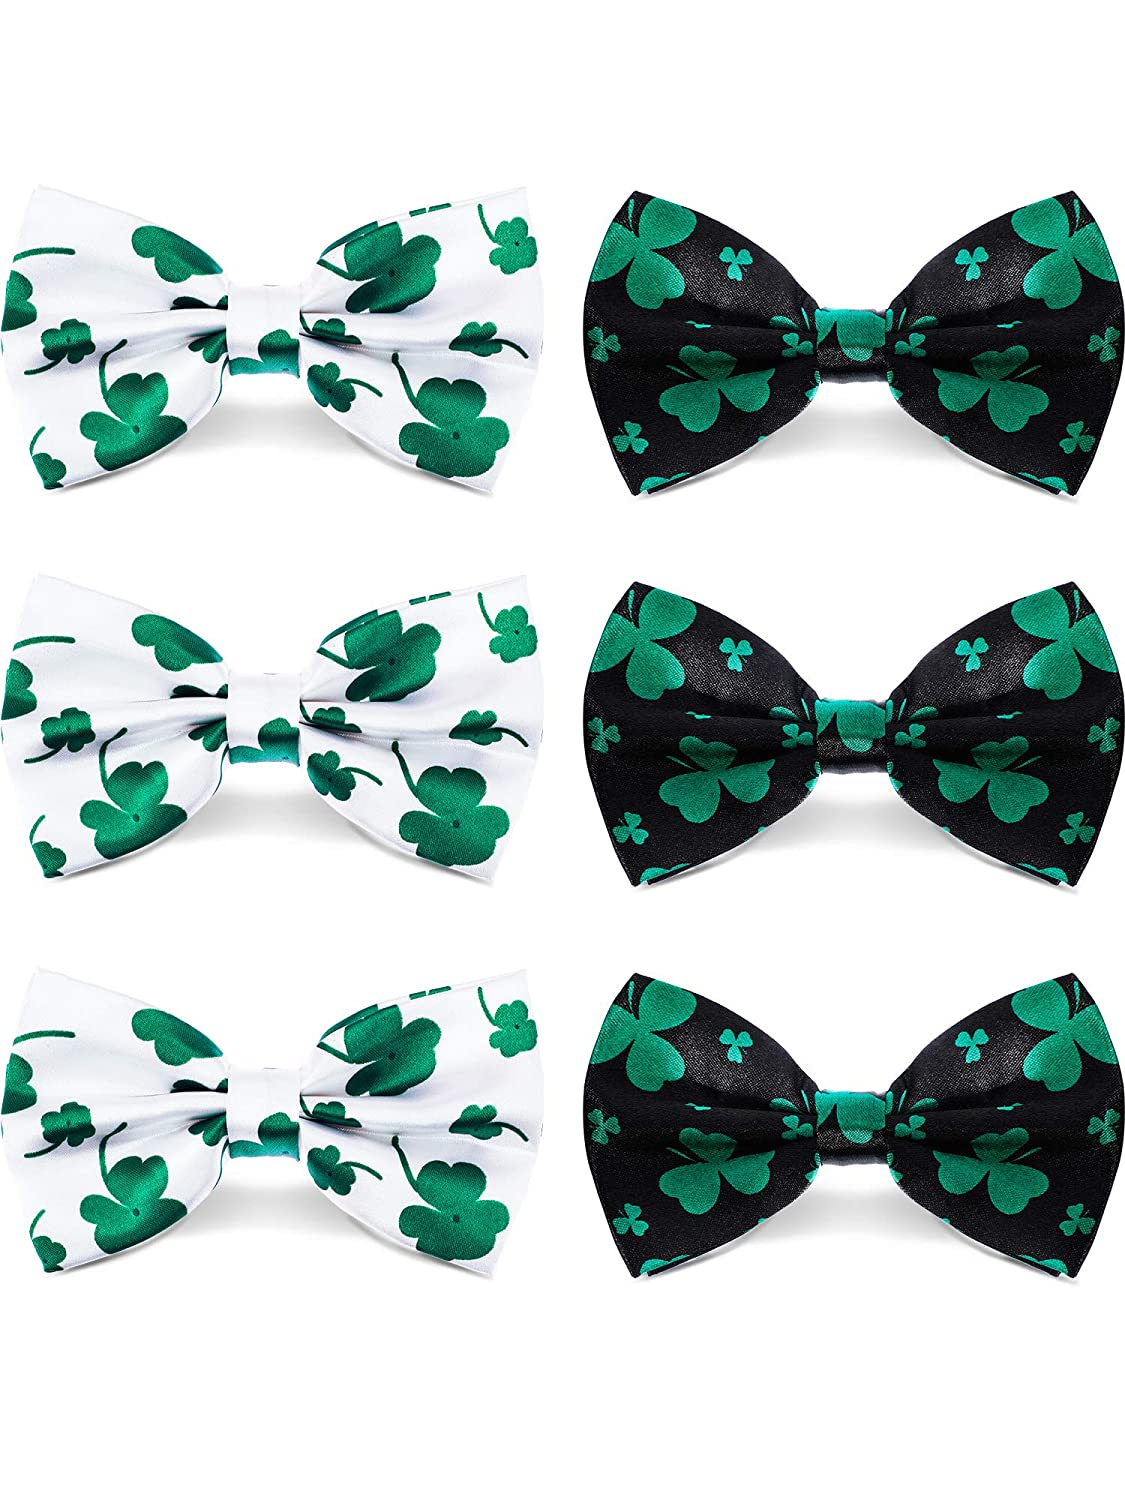 Patricks Day Accessories 2 Styles 6 Pieces Shamrock Bow-ties Adjustable Pre-Tied Bow Tie Unisex Green Clover Bow Tie for St